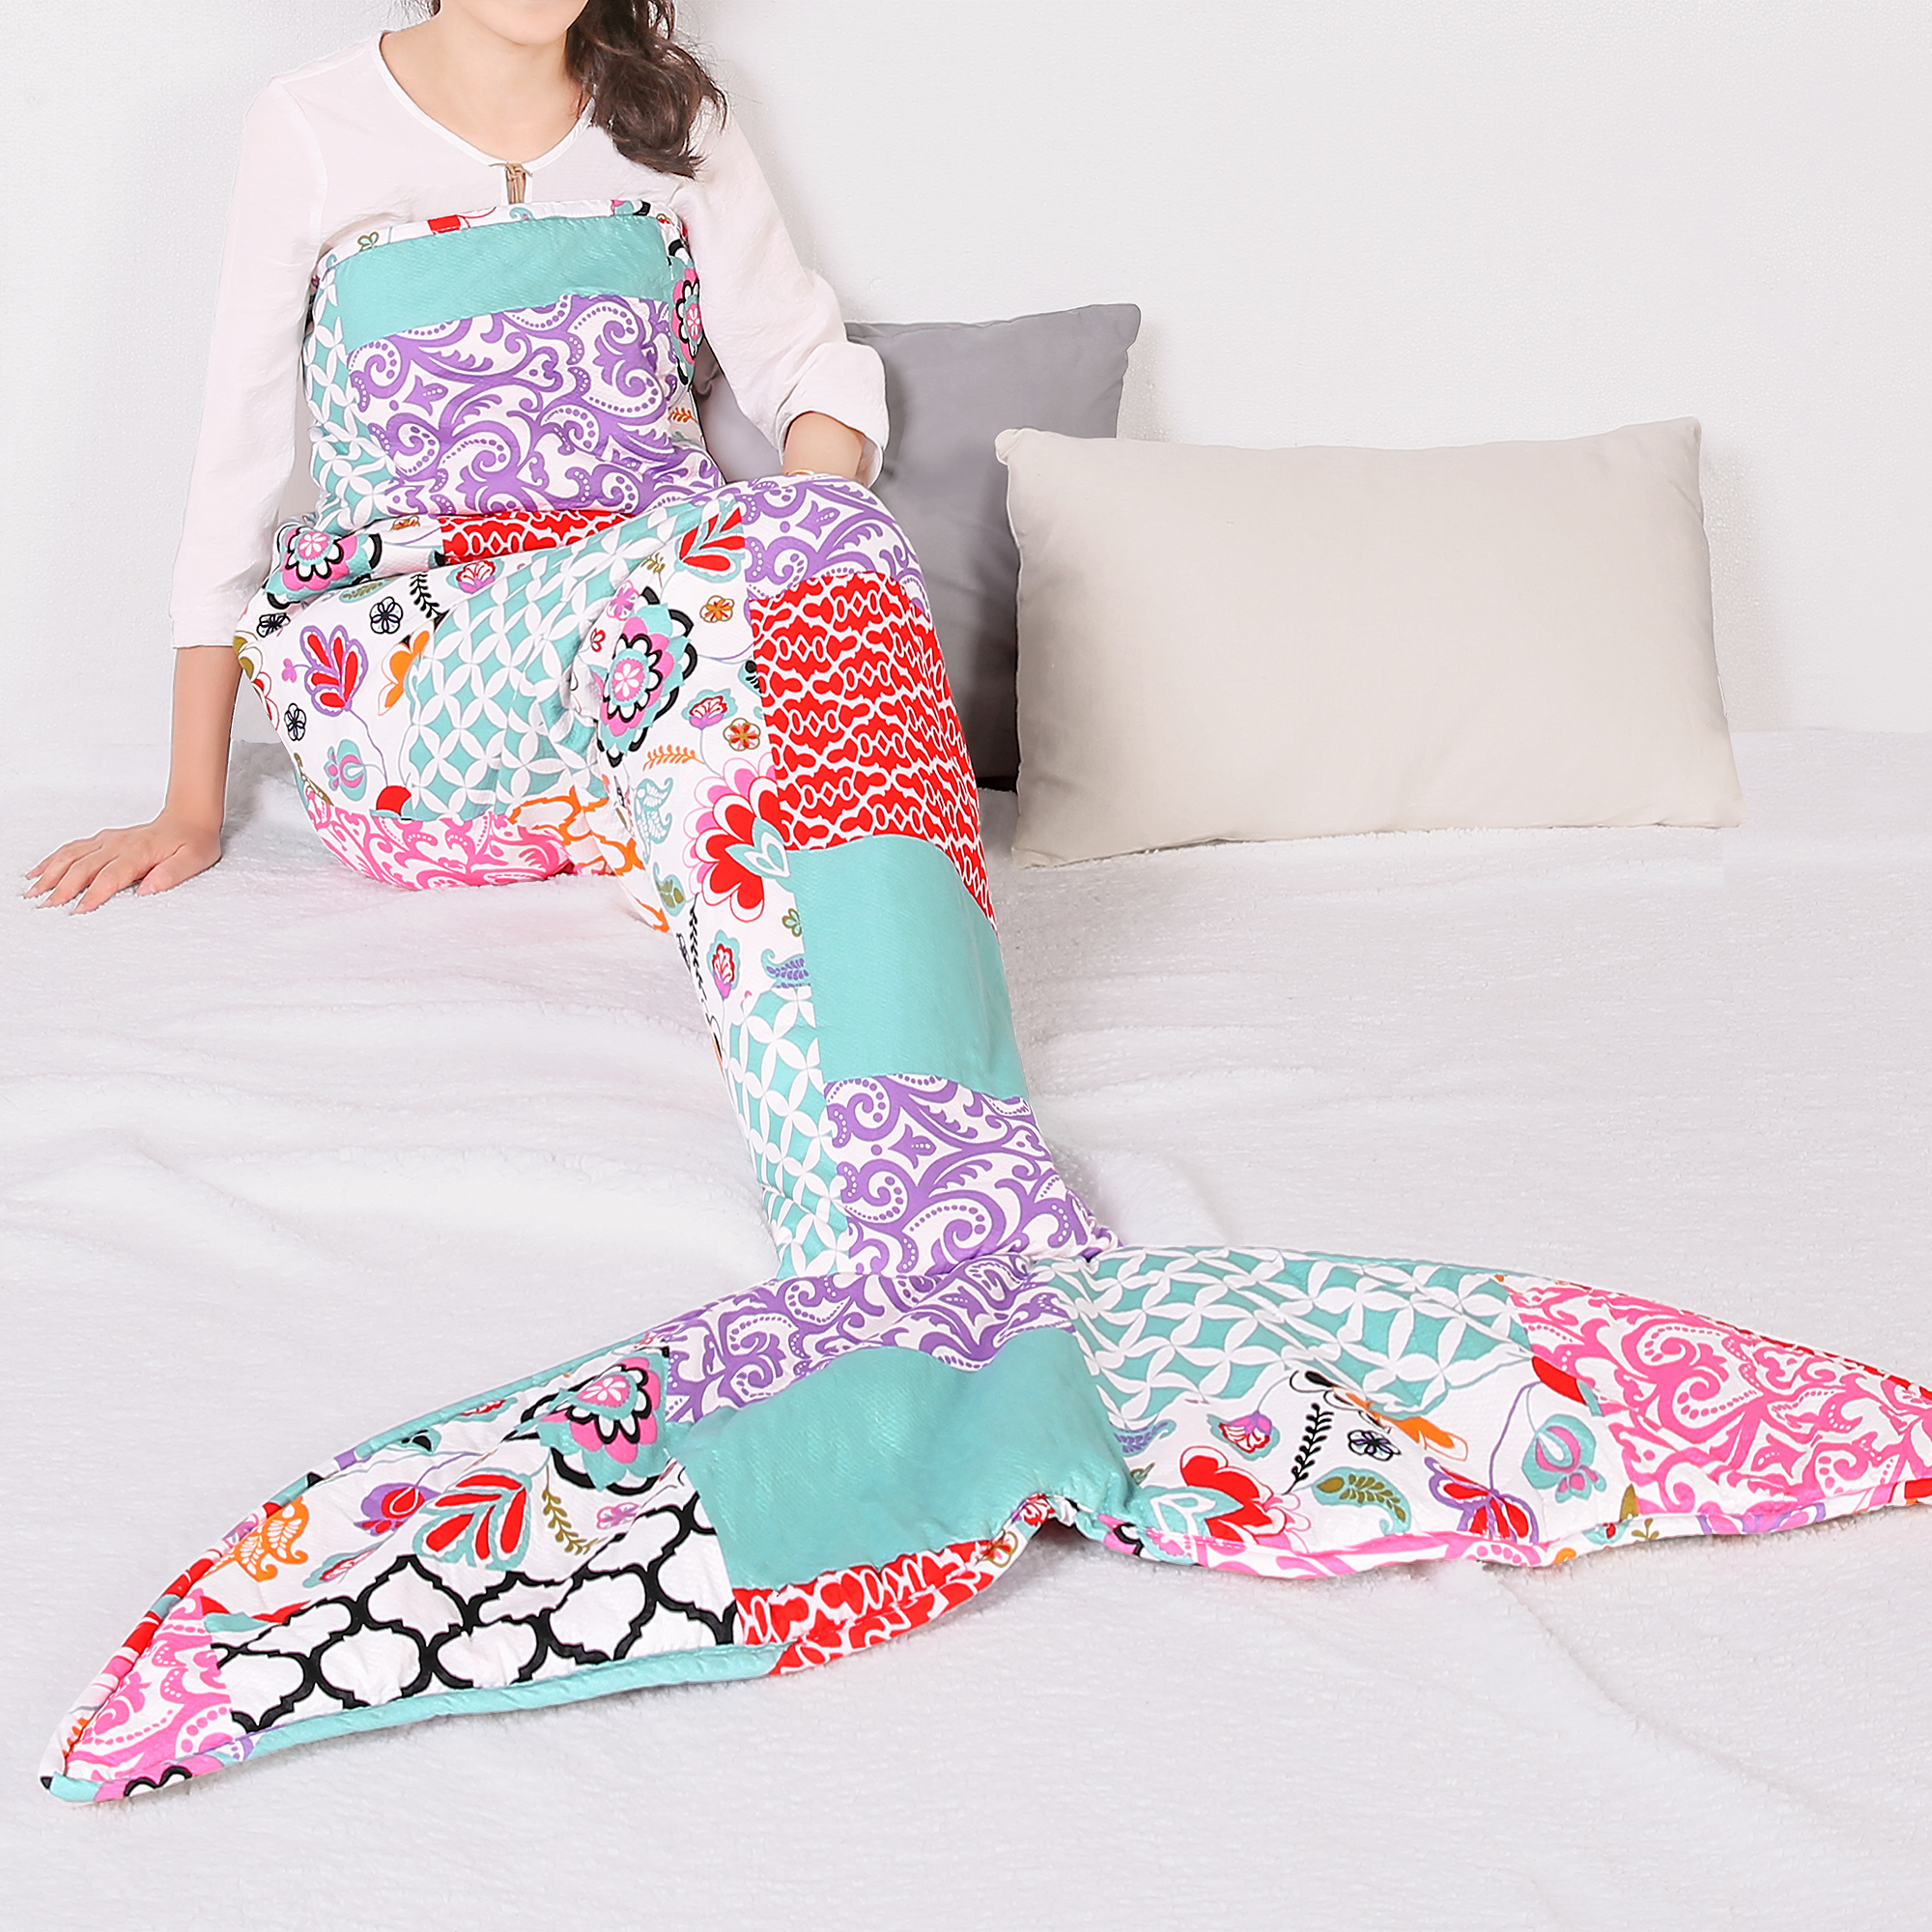 Brookdale Patchwork Mermaid Shape Sherpa Throw Purple/Turquoise Single 30x75